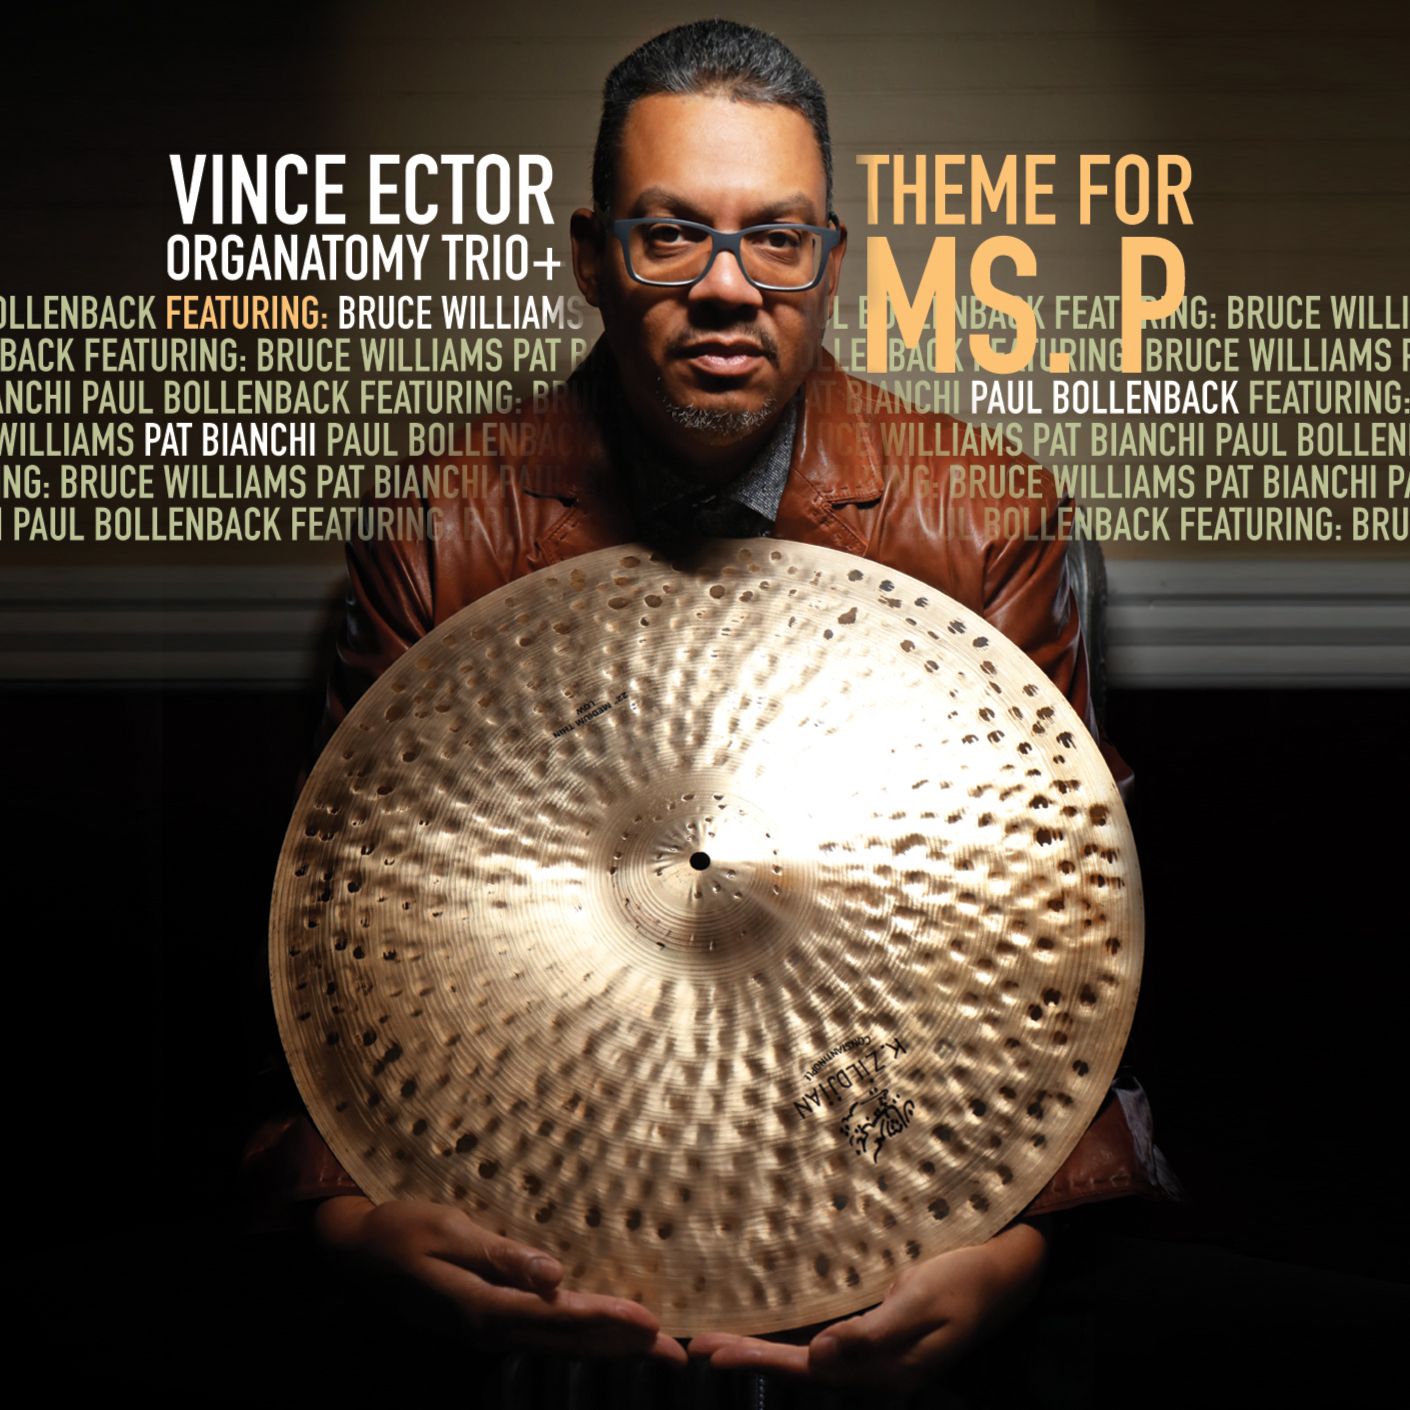 REVIEW: Vince Ector's 'Theme For Ms. P' Reviewed by Jazz Weekly